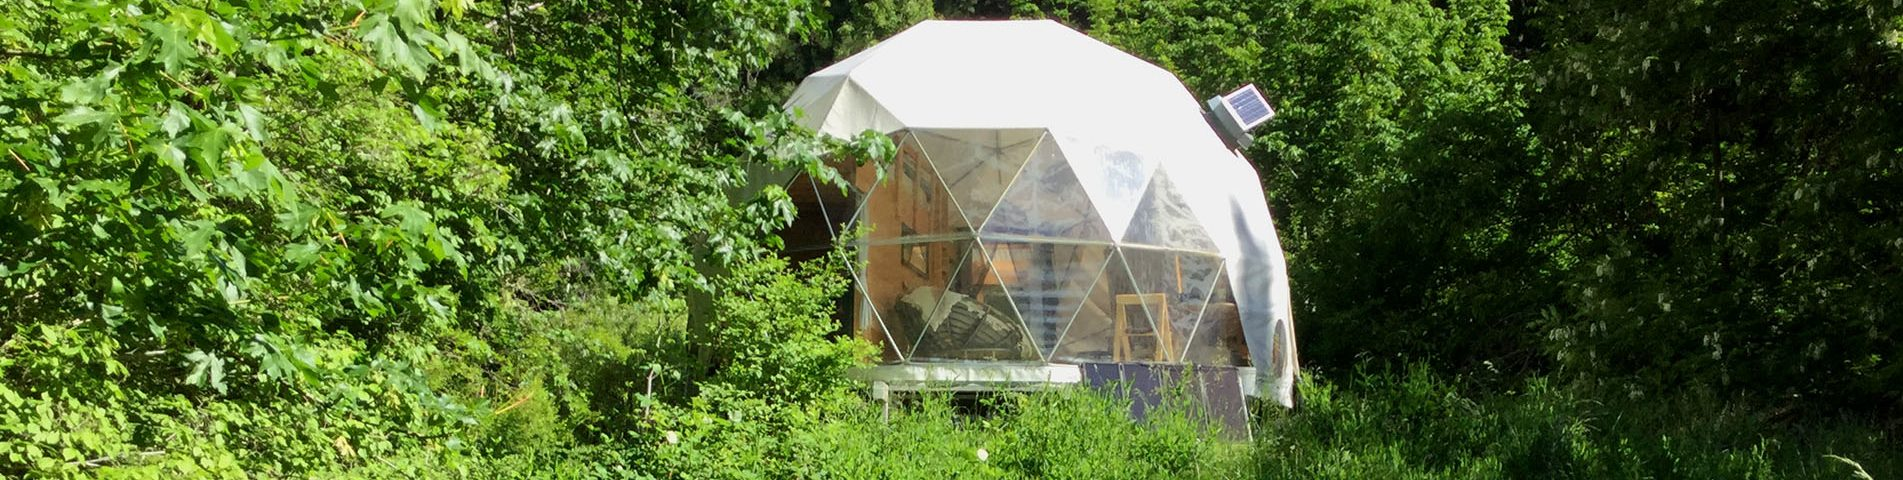 Off-Grid Living in a Dome Home